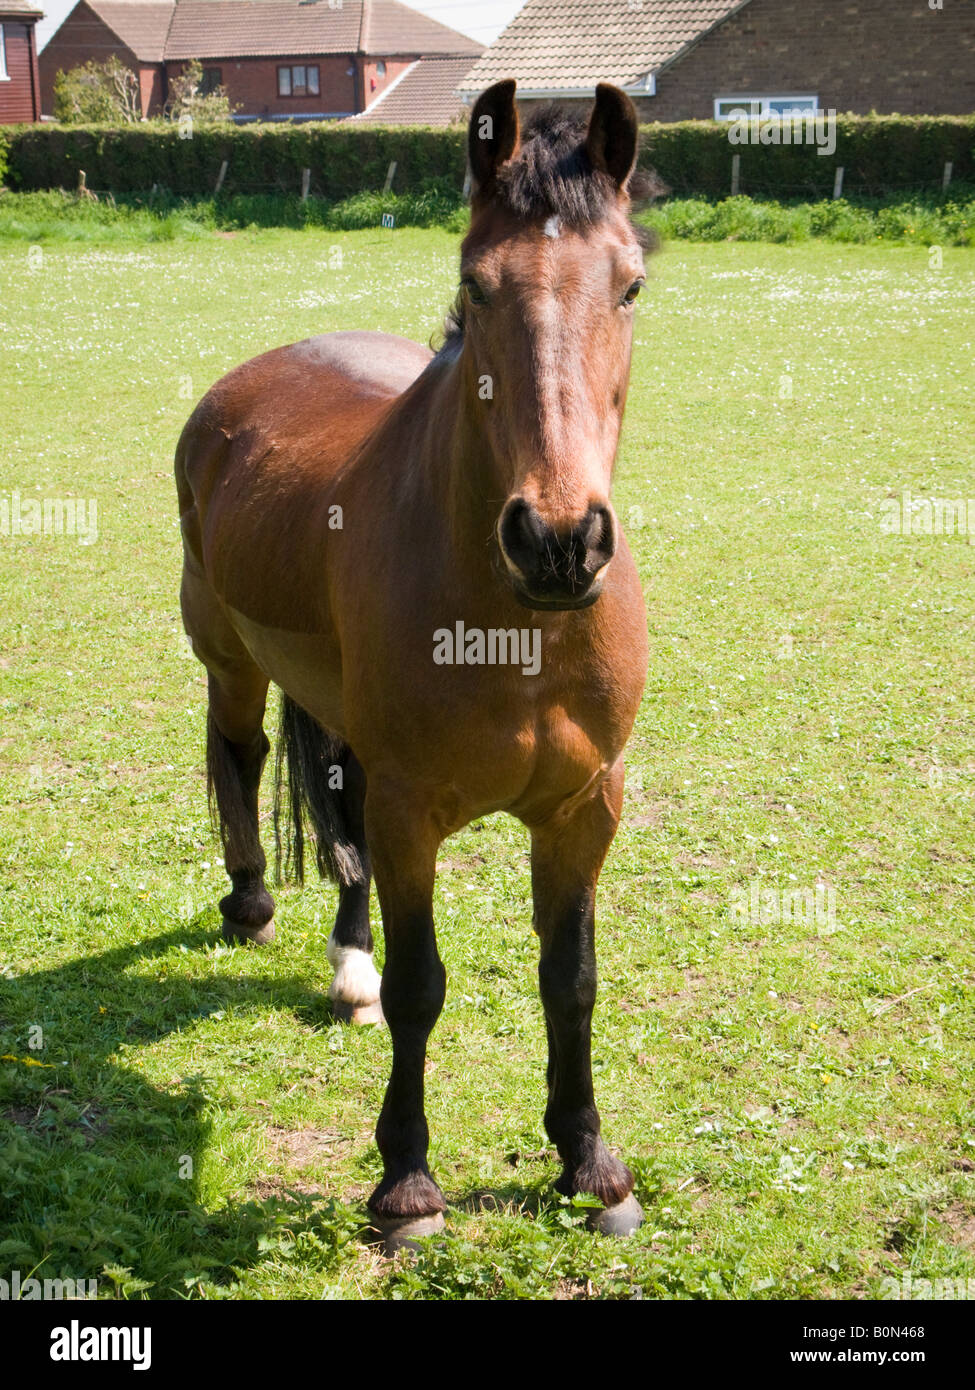 Chestnut brown horse in an urban field looking at camera - Stock Image